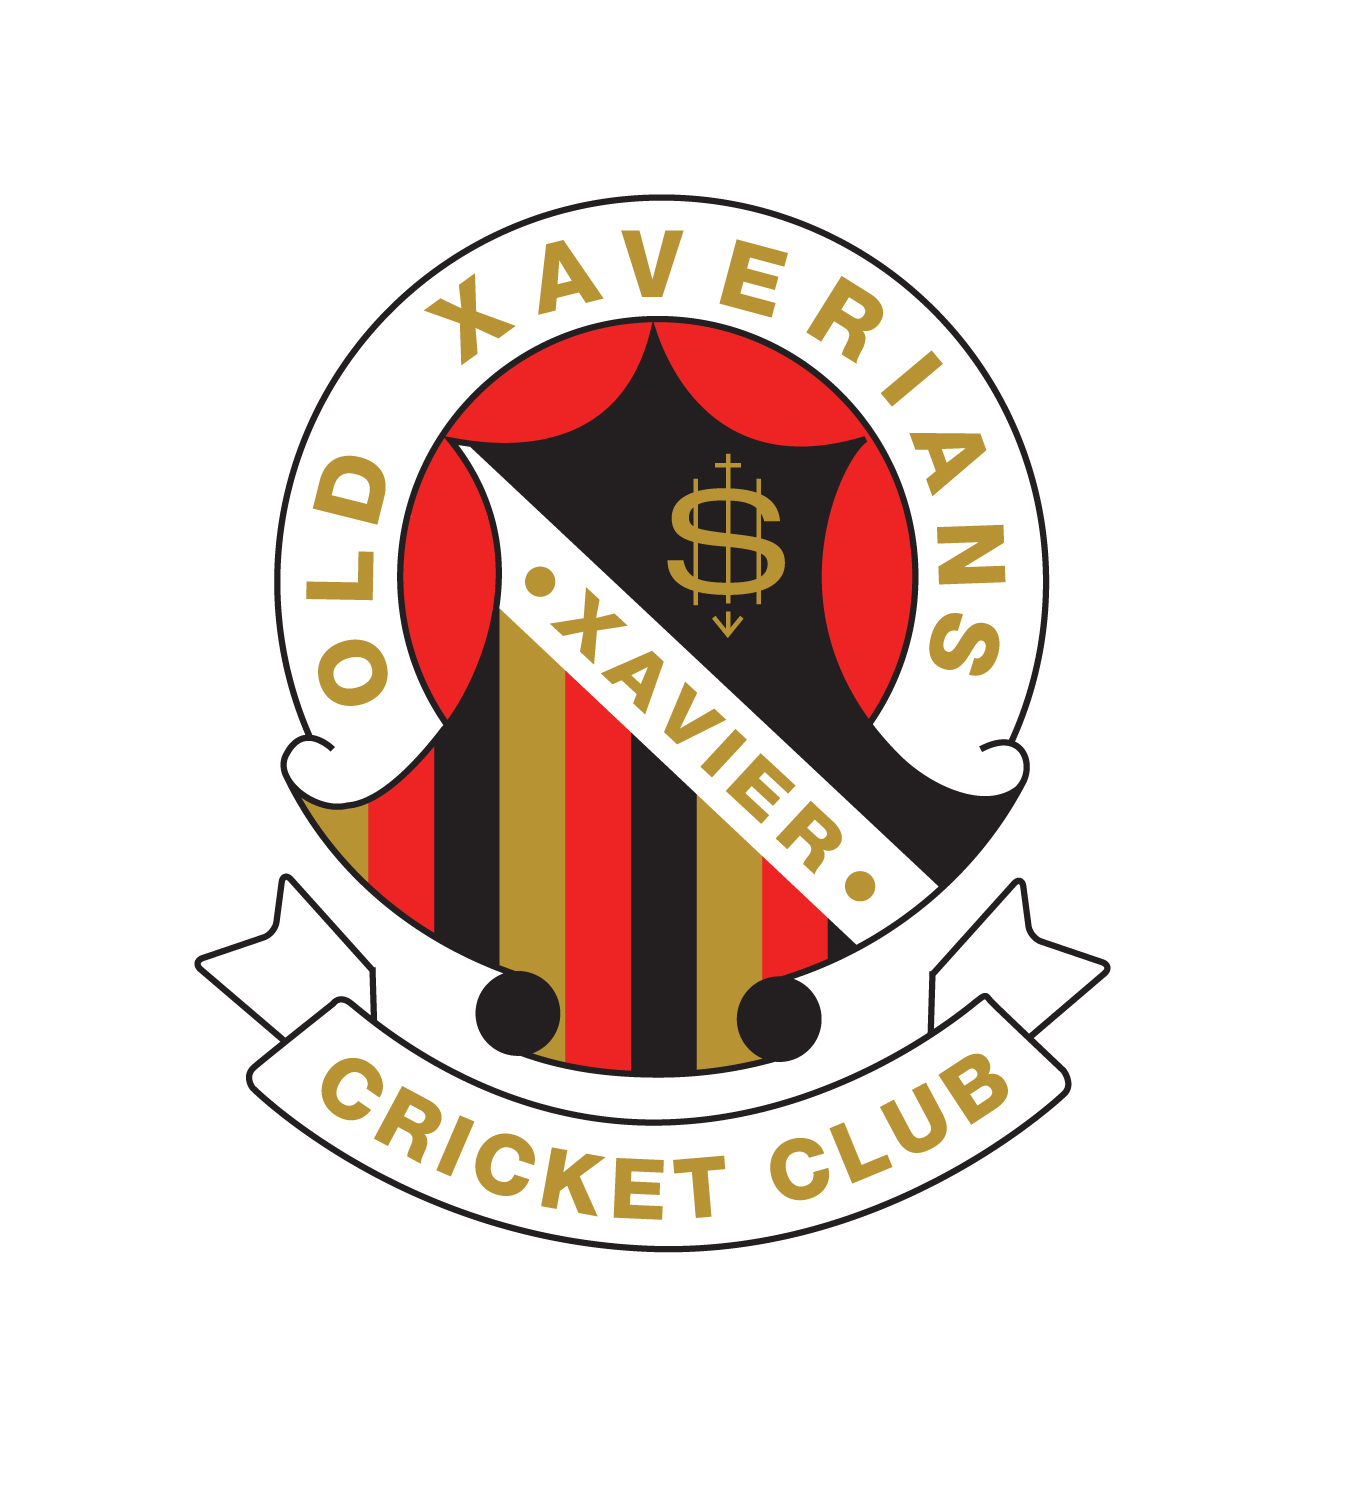 Old Xaverians Cricket Club